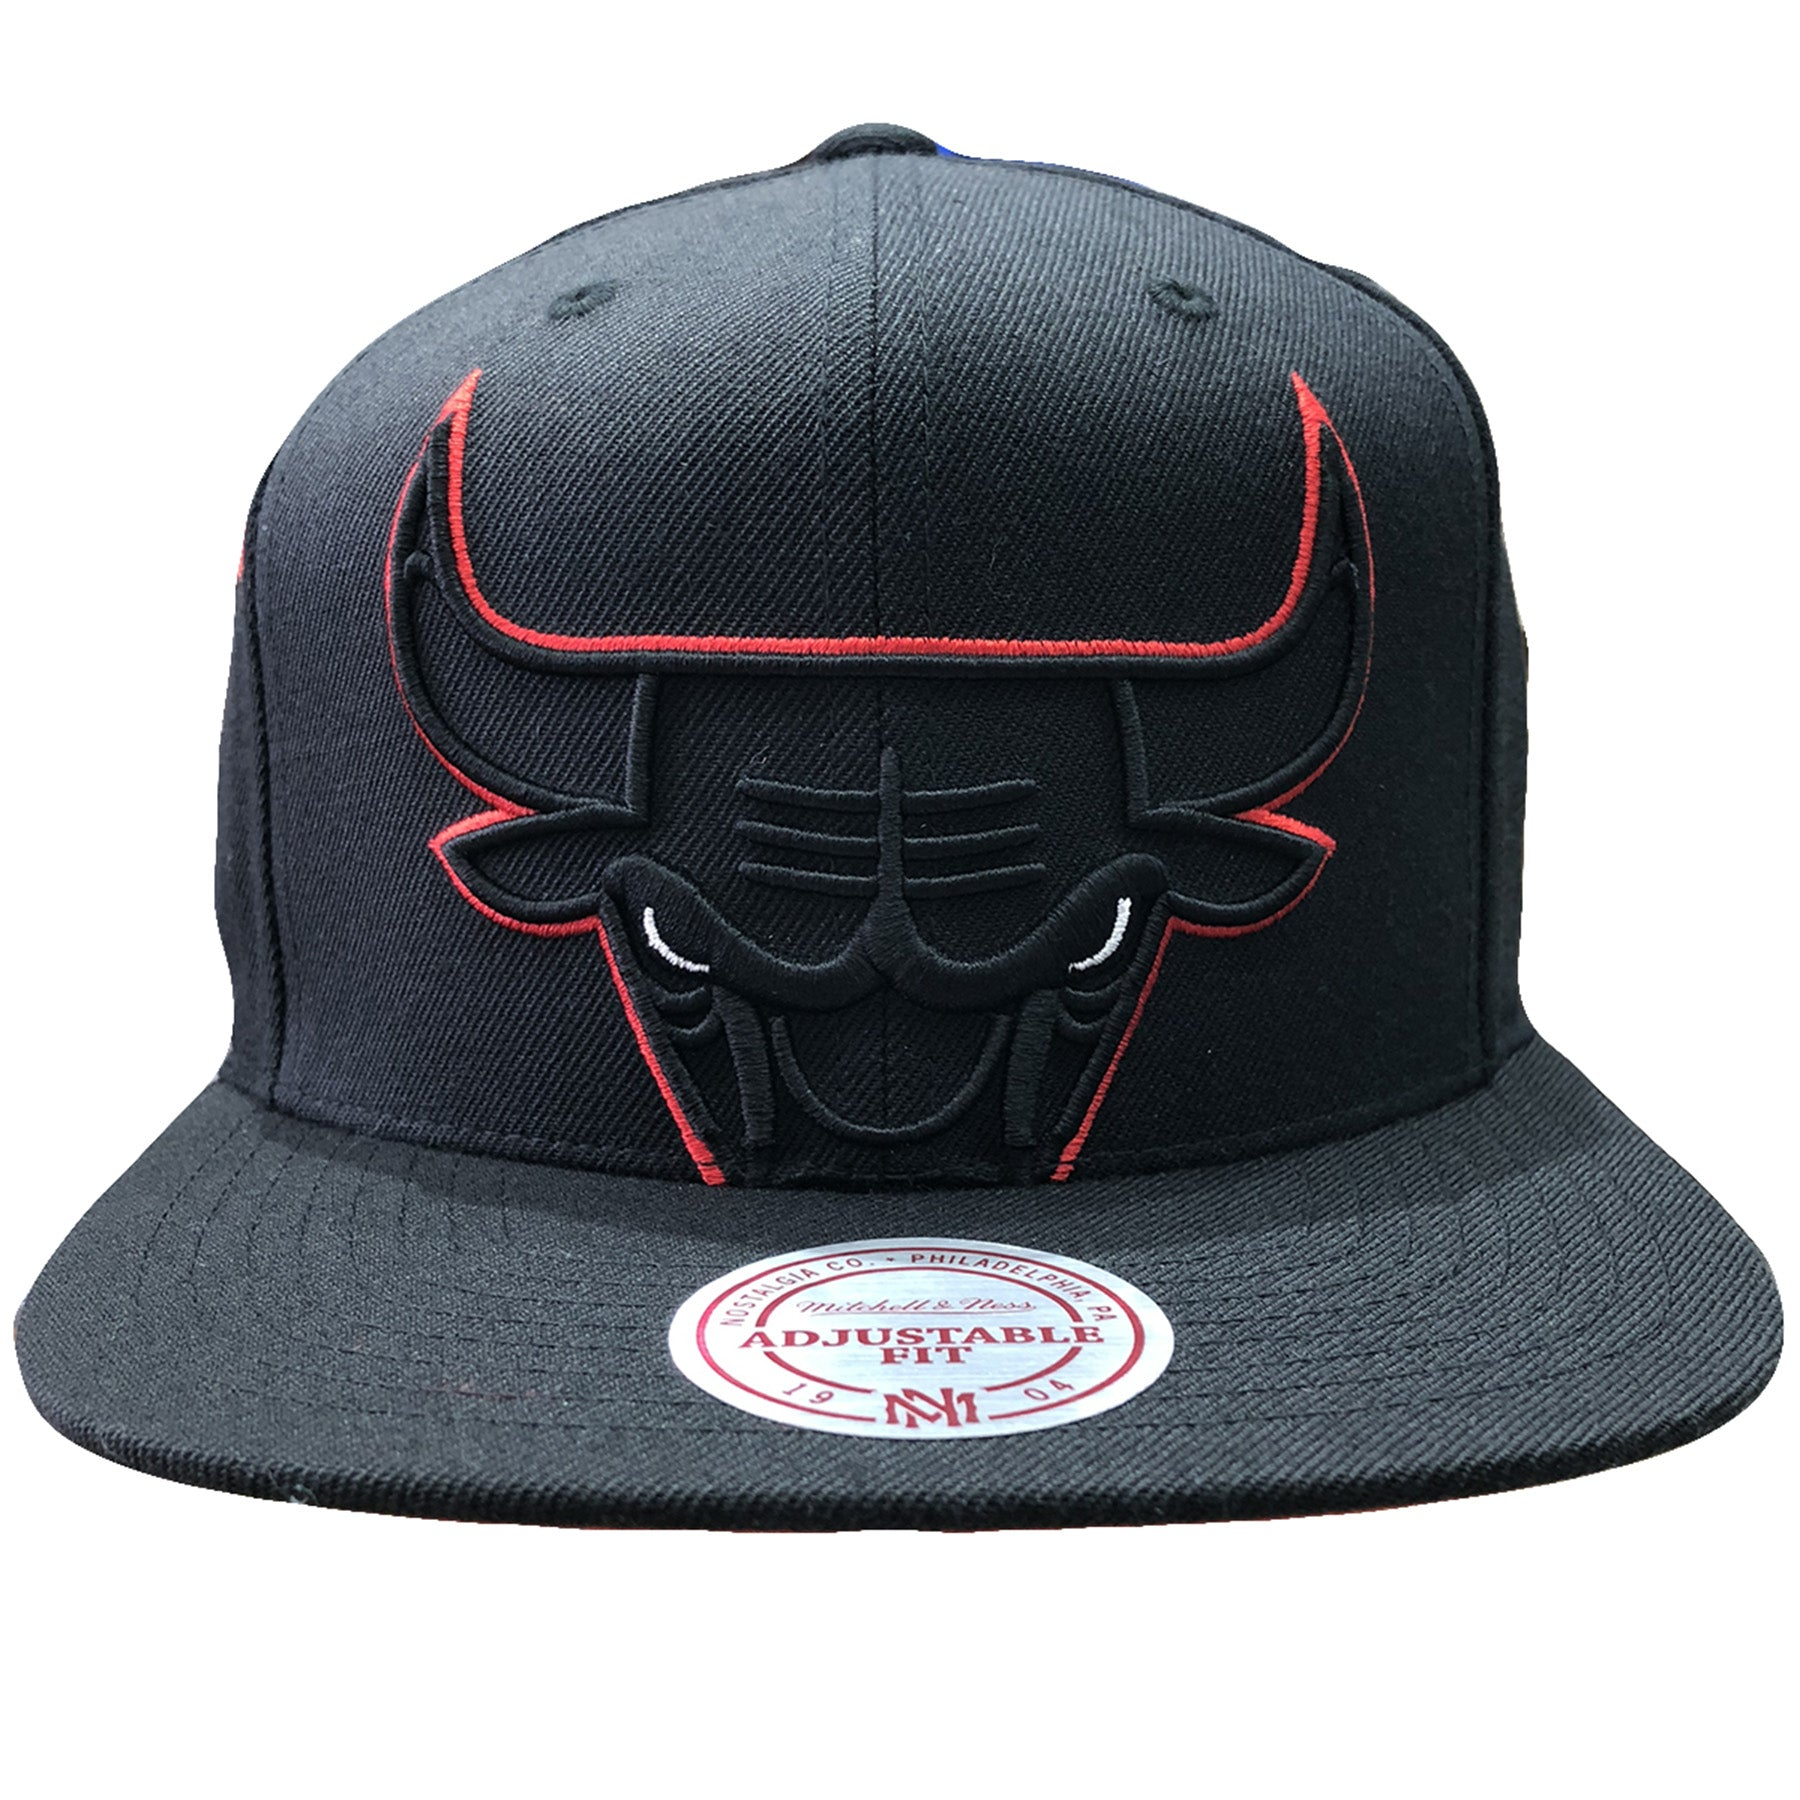 c81f764d7ff embroidered on the front of the chicago bulls mitchell and ness snapback  hat is the Bulls